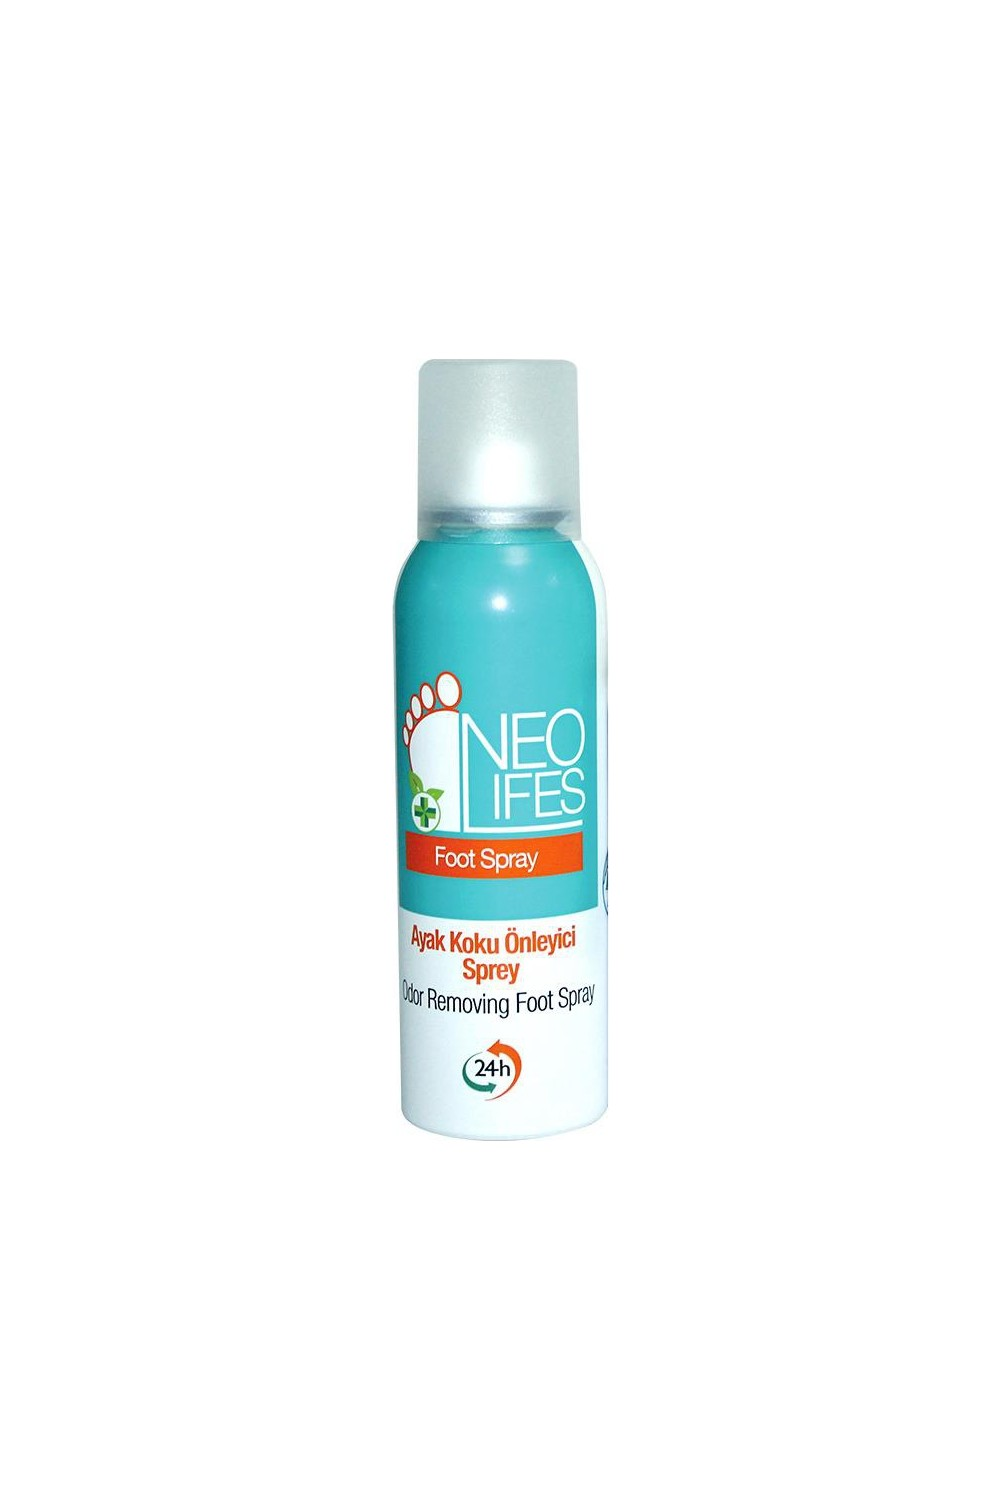 Neolifes Foot Spray